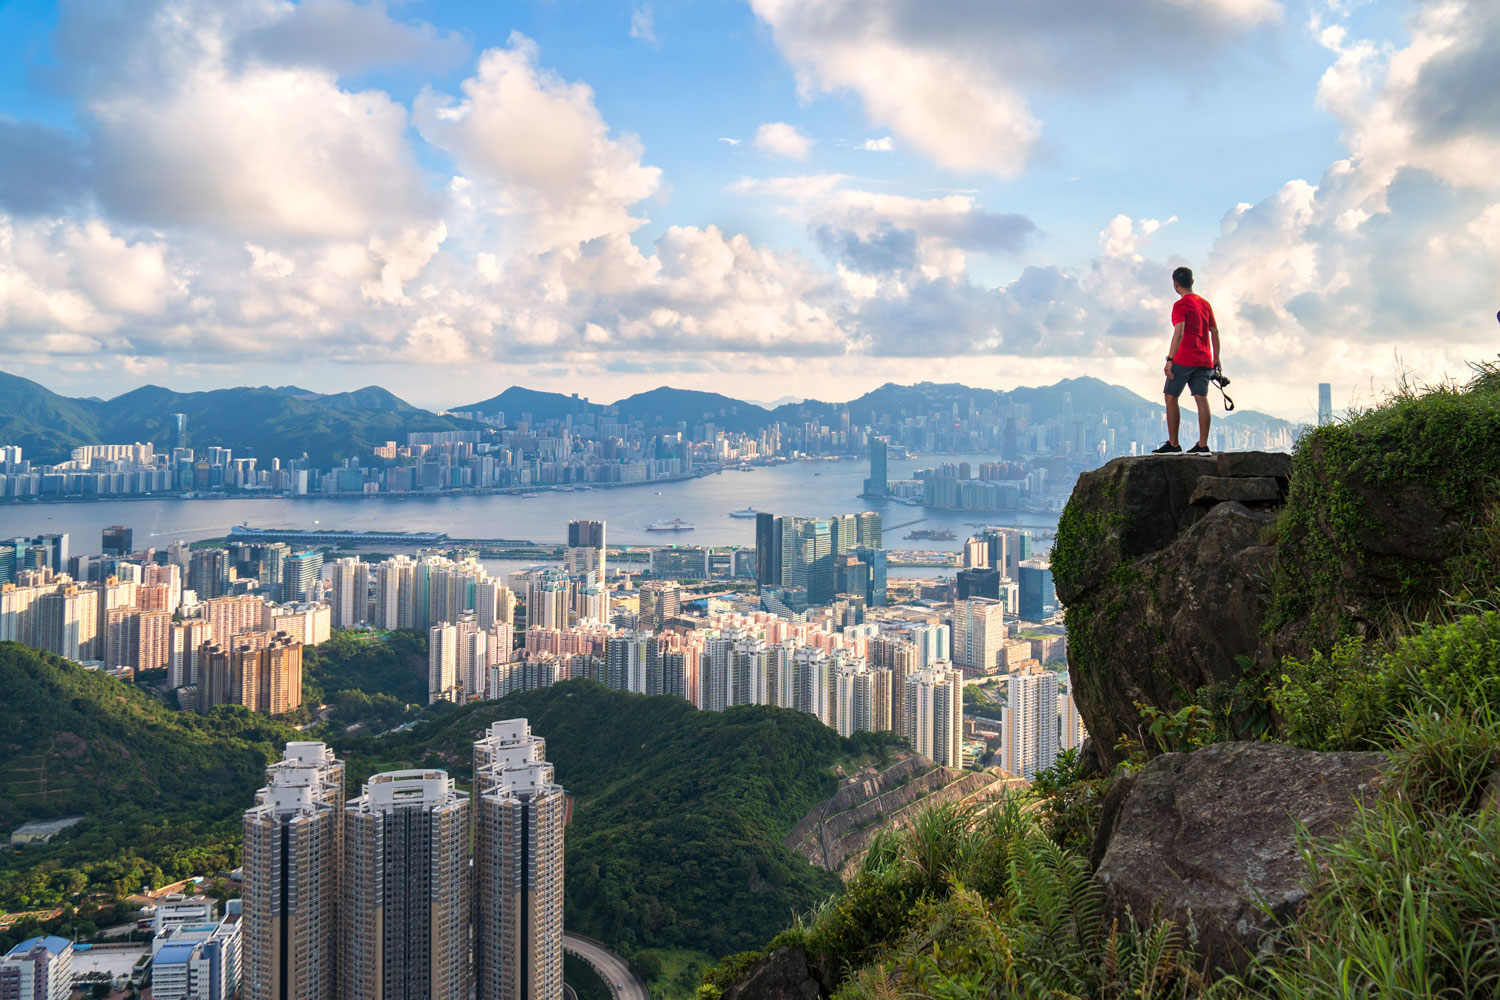 Cityscape of Hong Kong with a photographer looking down from lookout spot.